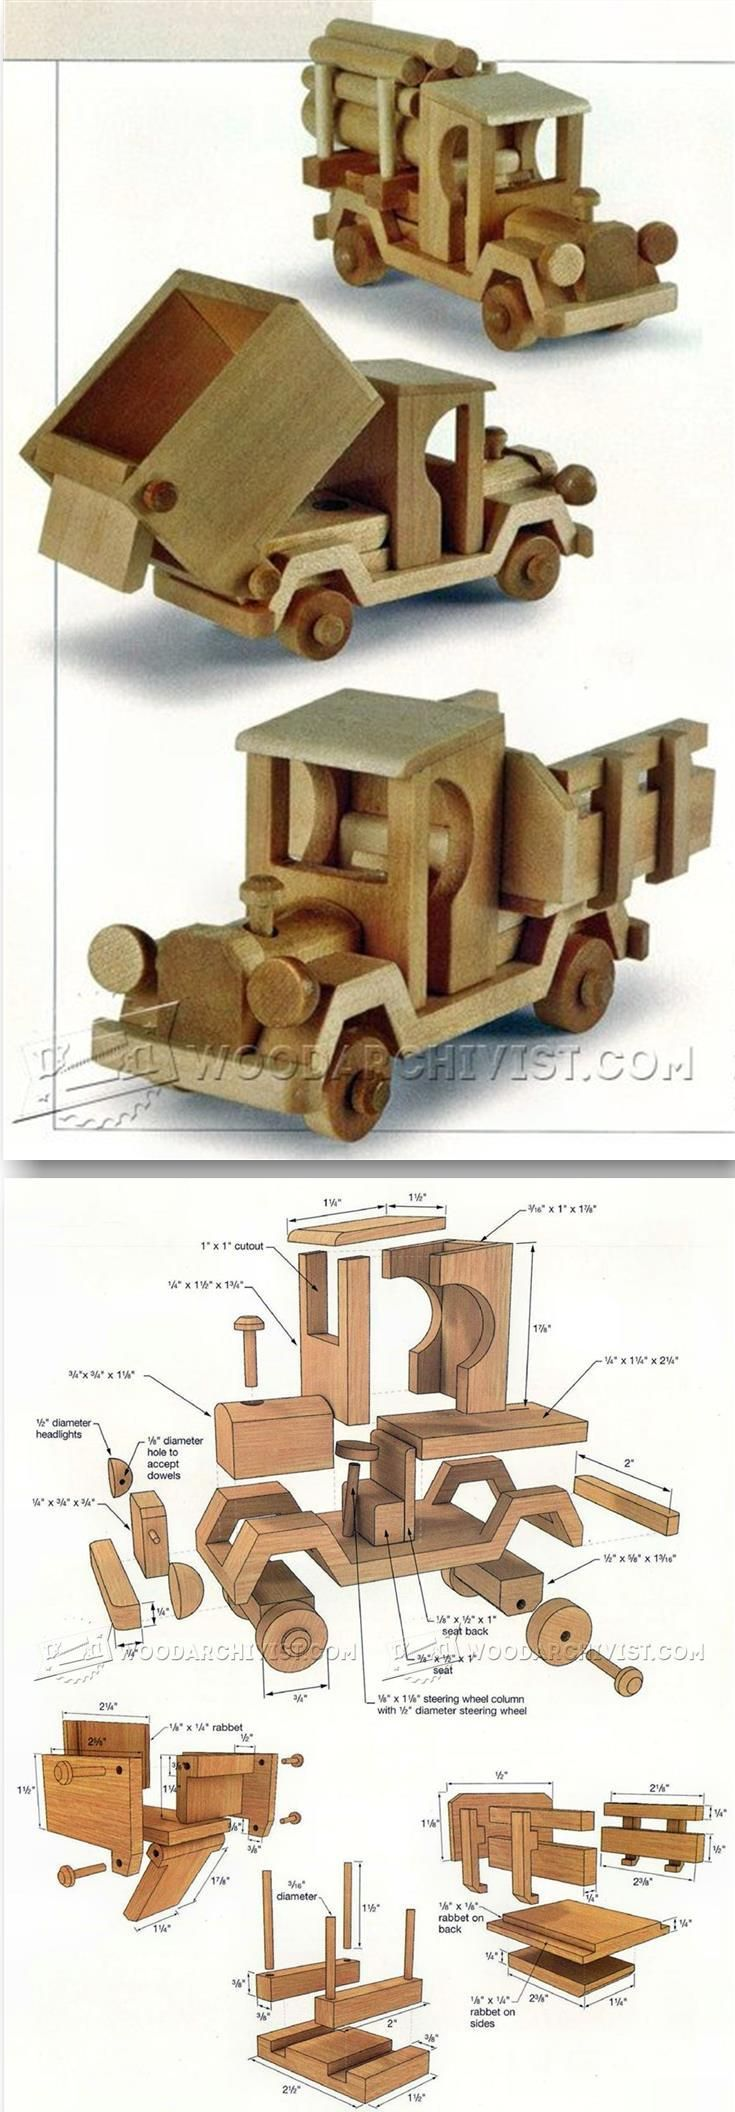 Wooden Toy Truck Plans - Wooden Toy Plans and Projects ...